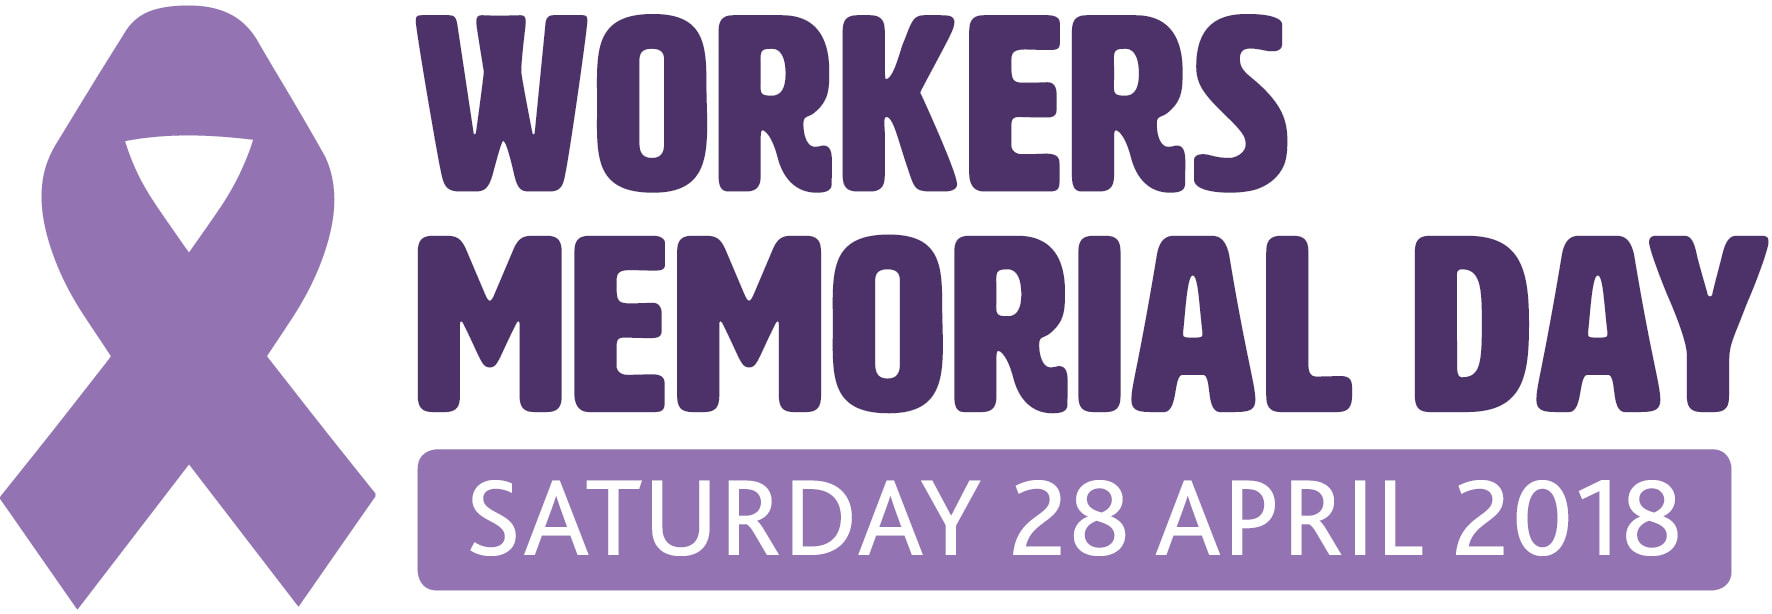 Corby Workers Memorial Day Commemoration Event 2018